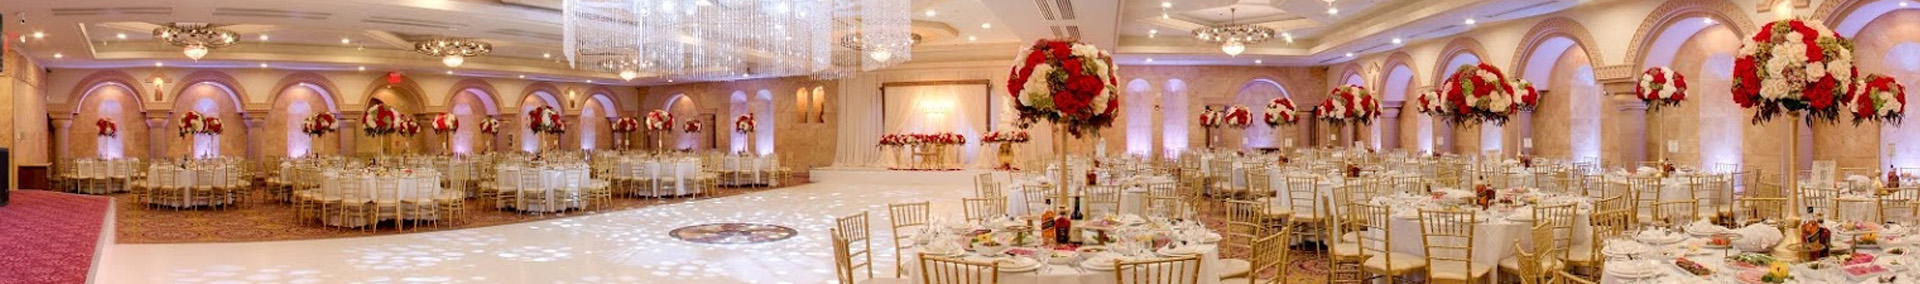 Panoramic of los angeles wedding venue